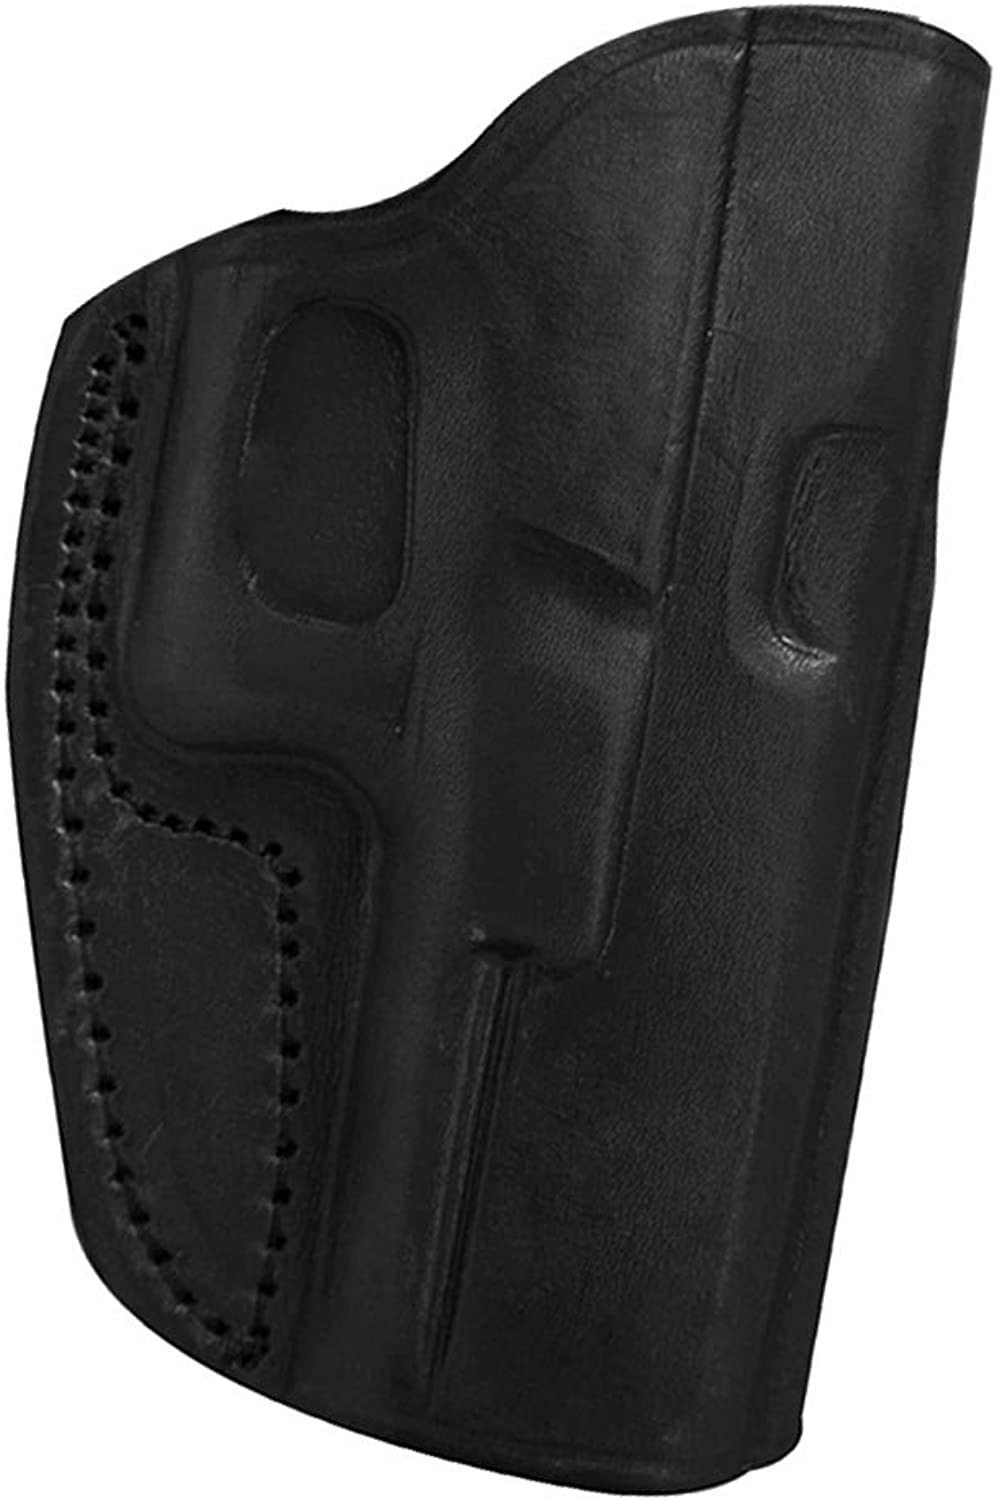 Tagua Cross Draw Holster, Ruger P345R, Right Hand Black, CDH3025